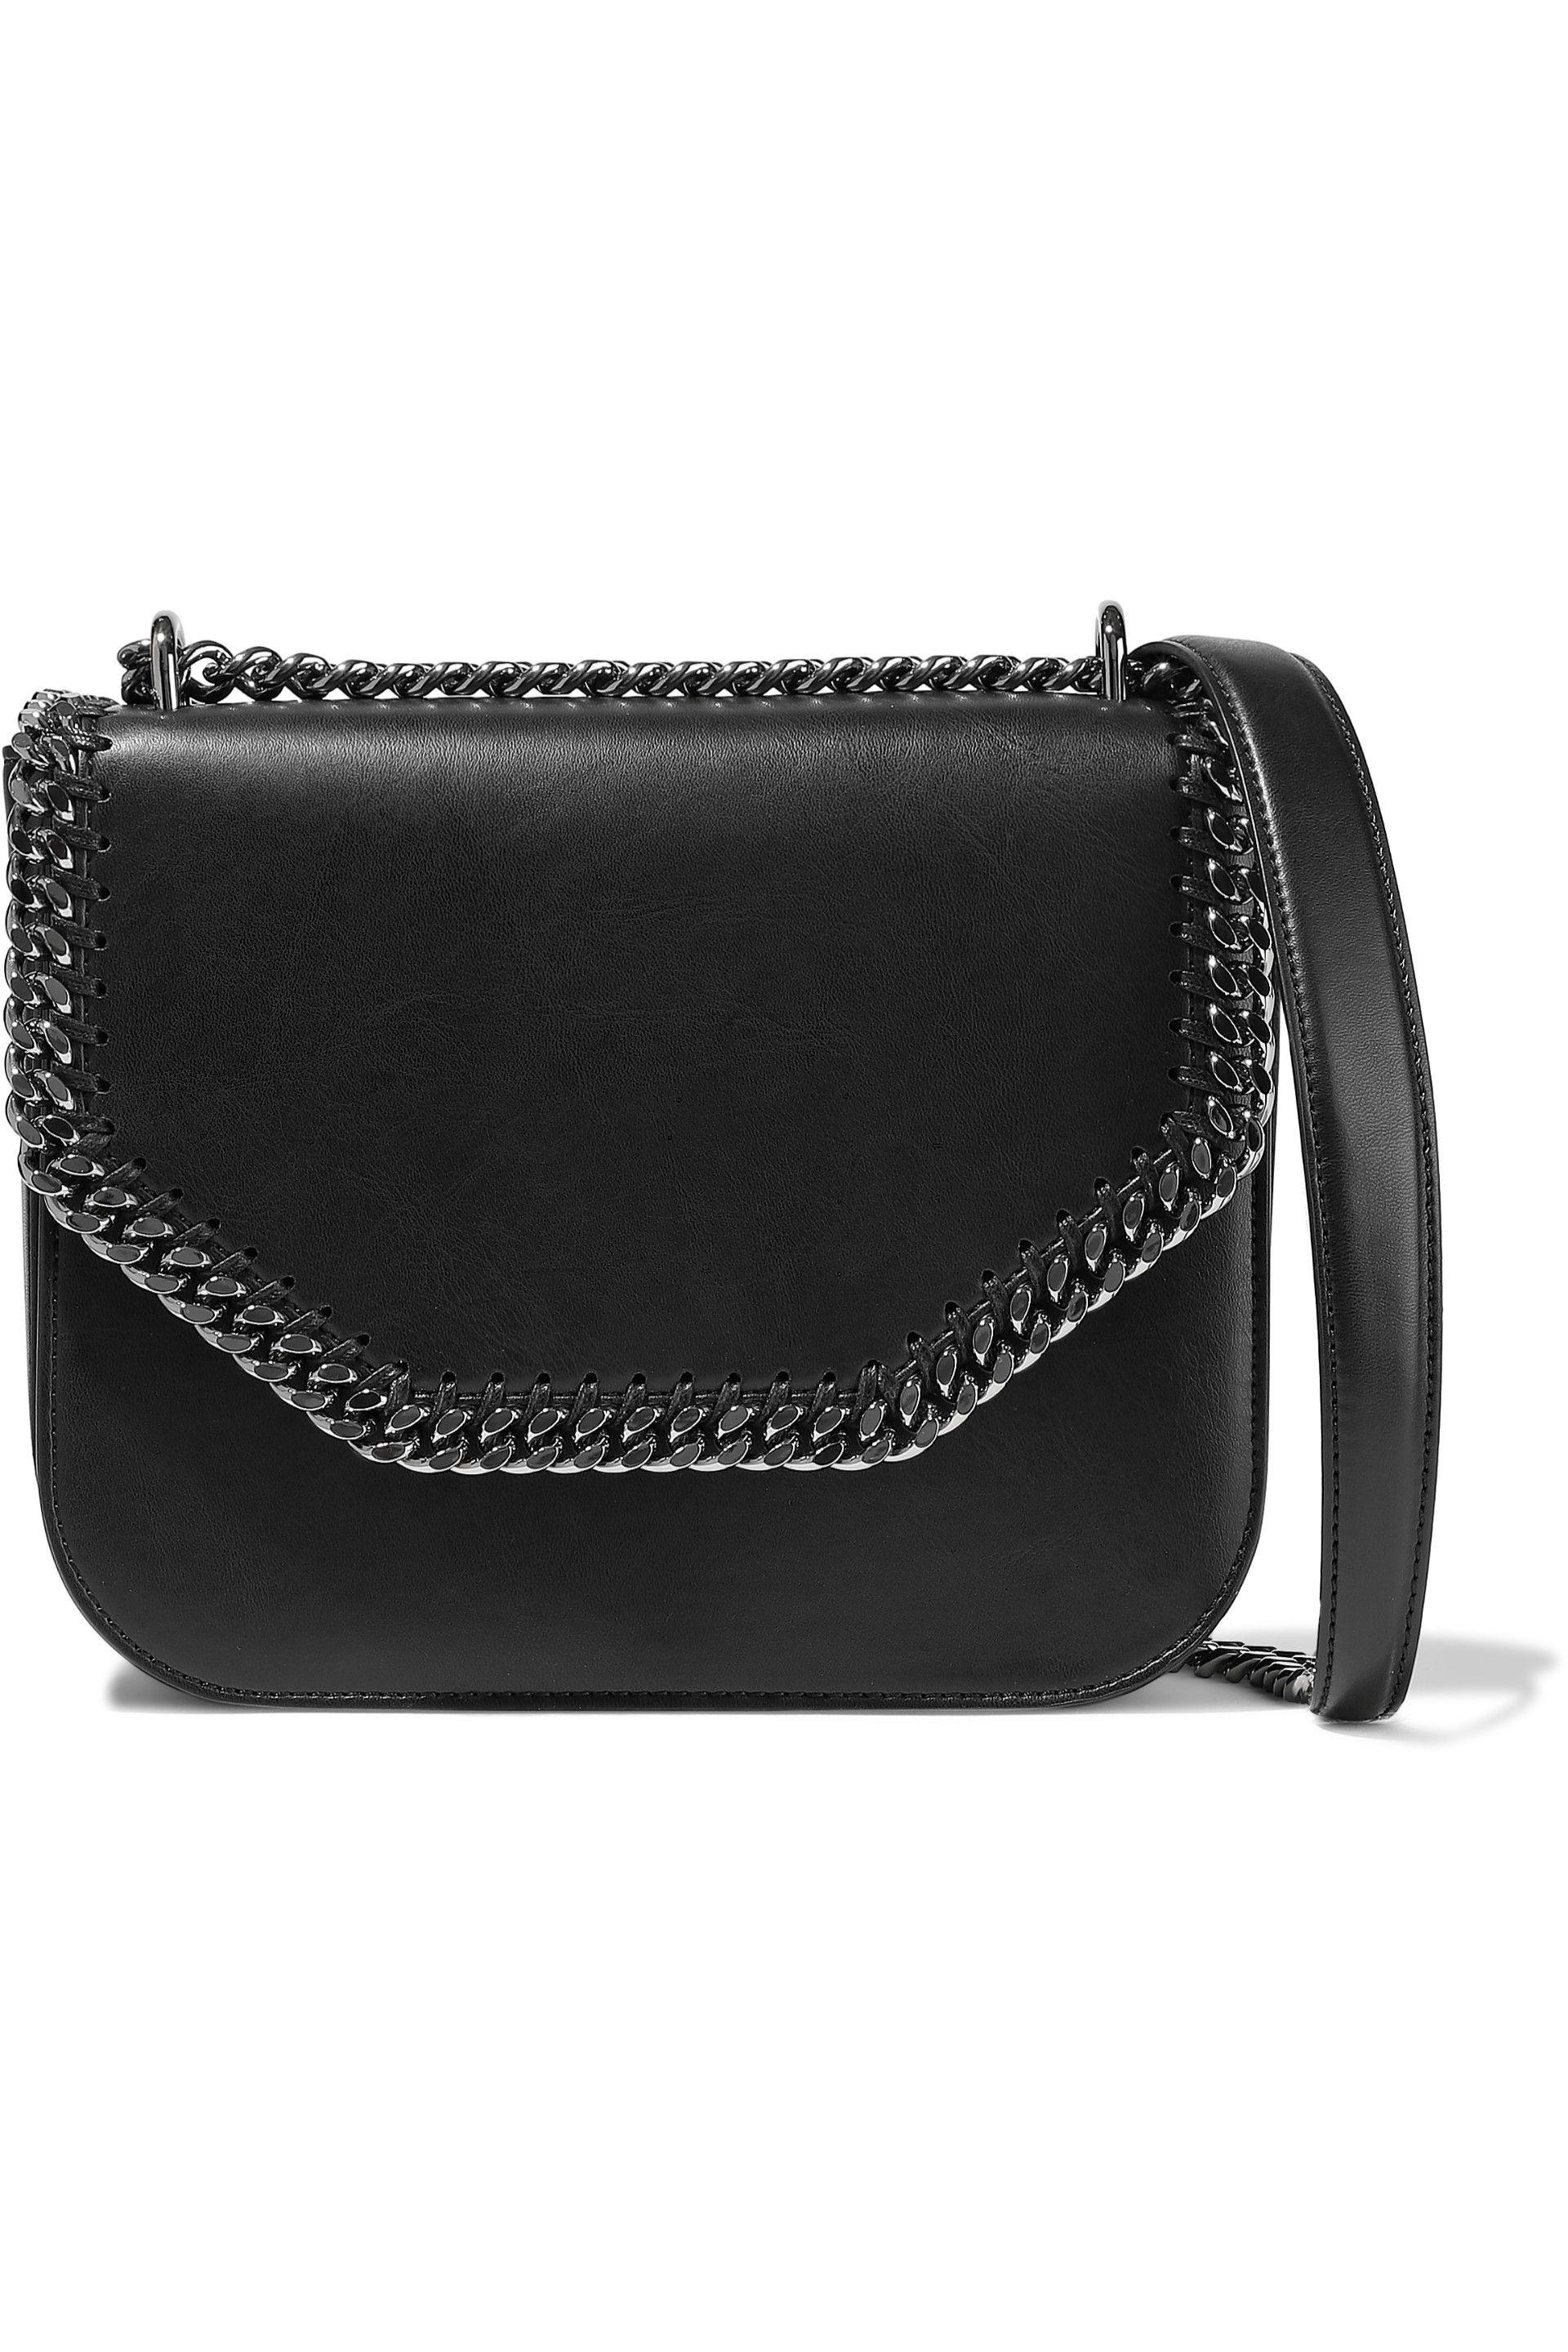 173f726929f Lyst - Stella Mccartney Falabella Faux Leather Shoulder Bag in Black